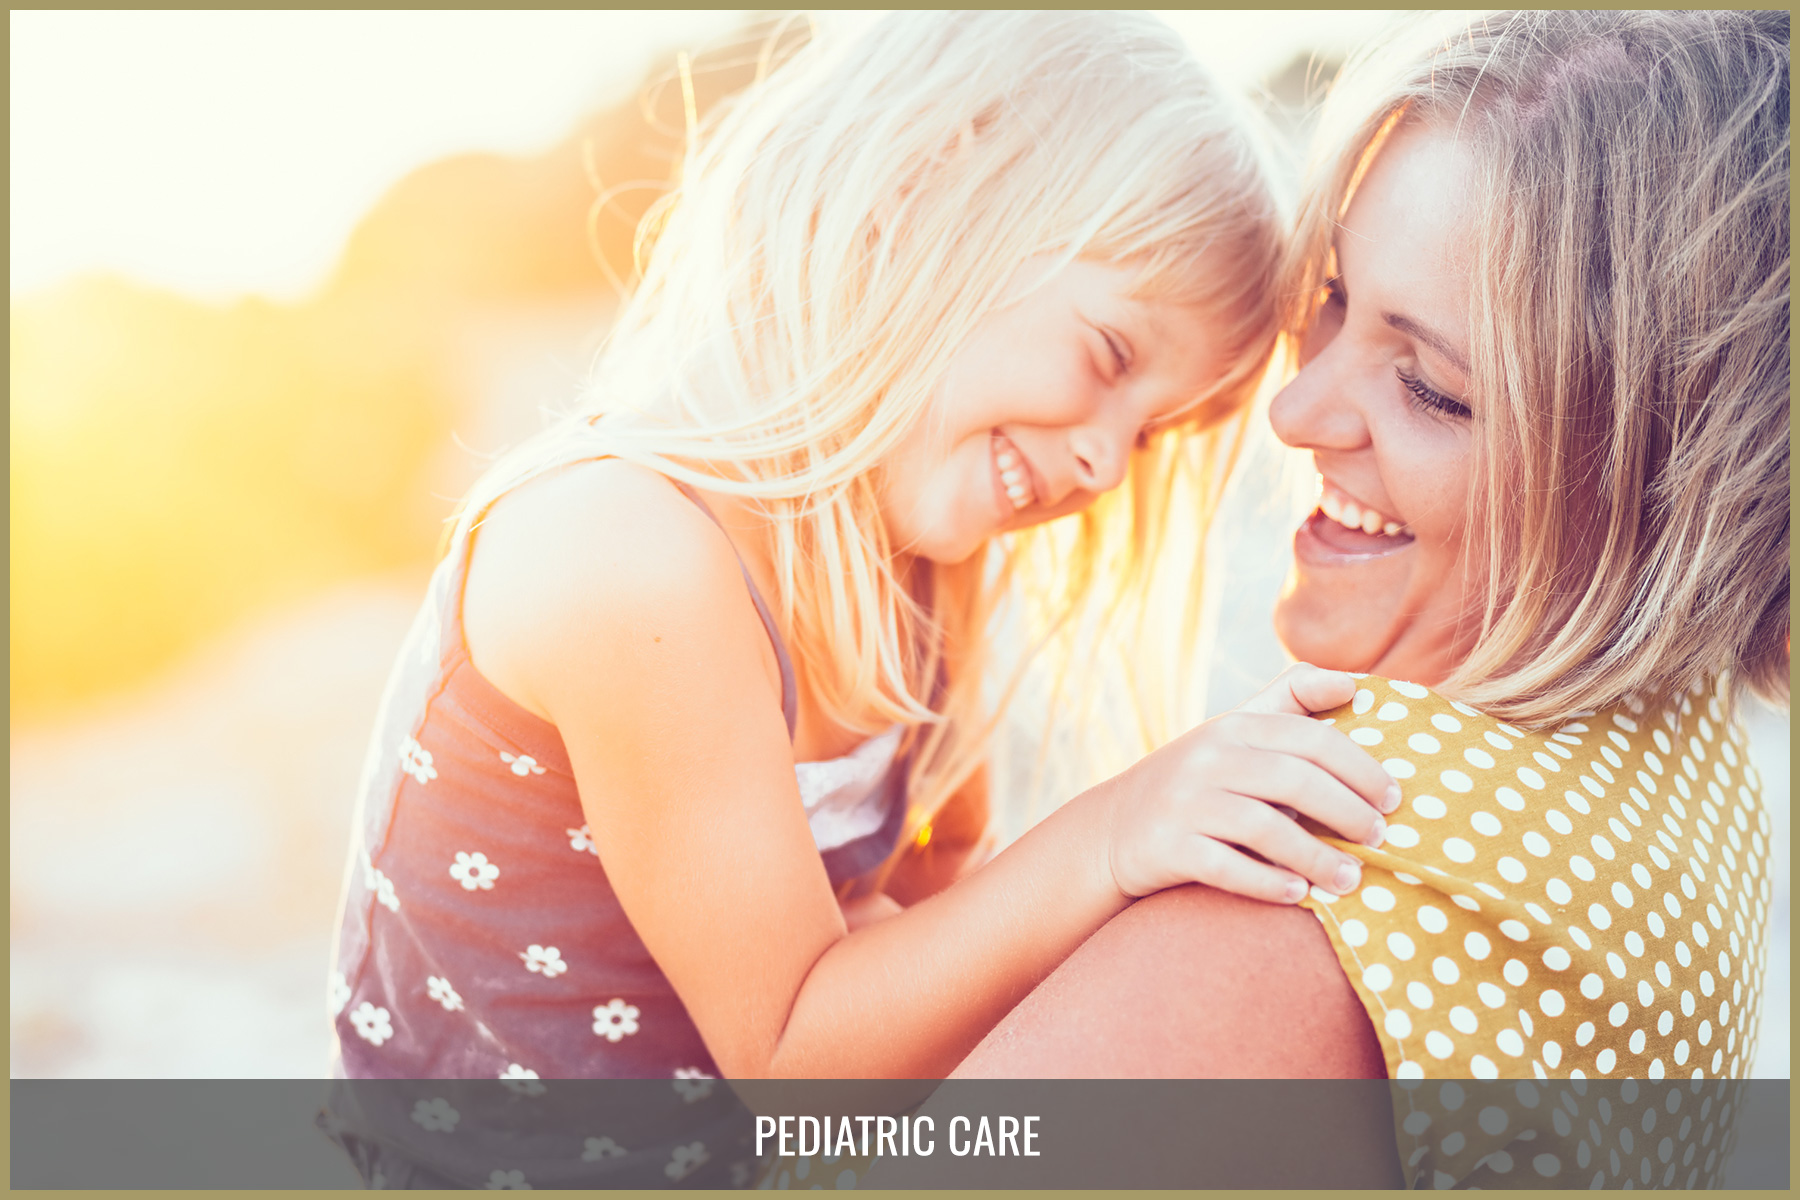 Columbia Gorge Family Medicine | Pediatric Care